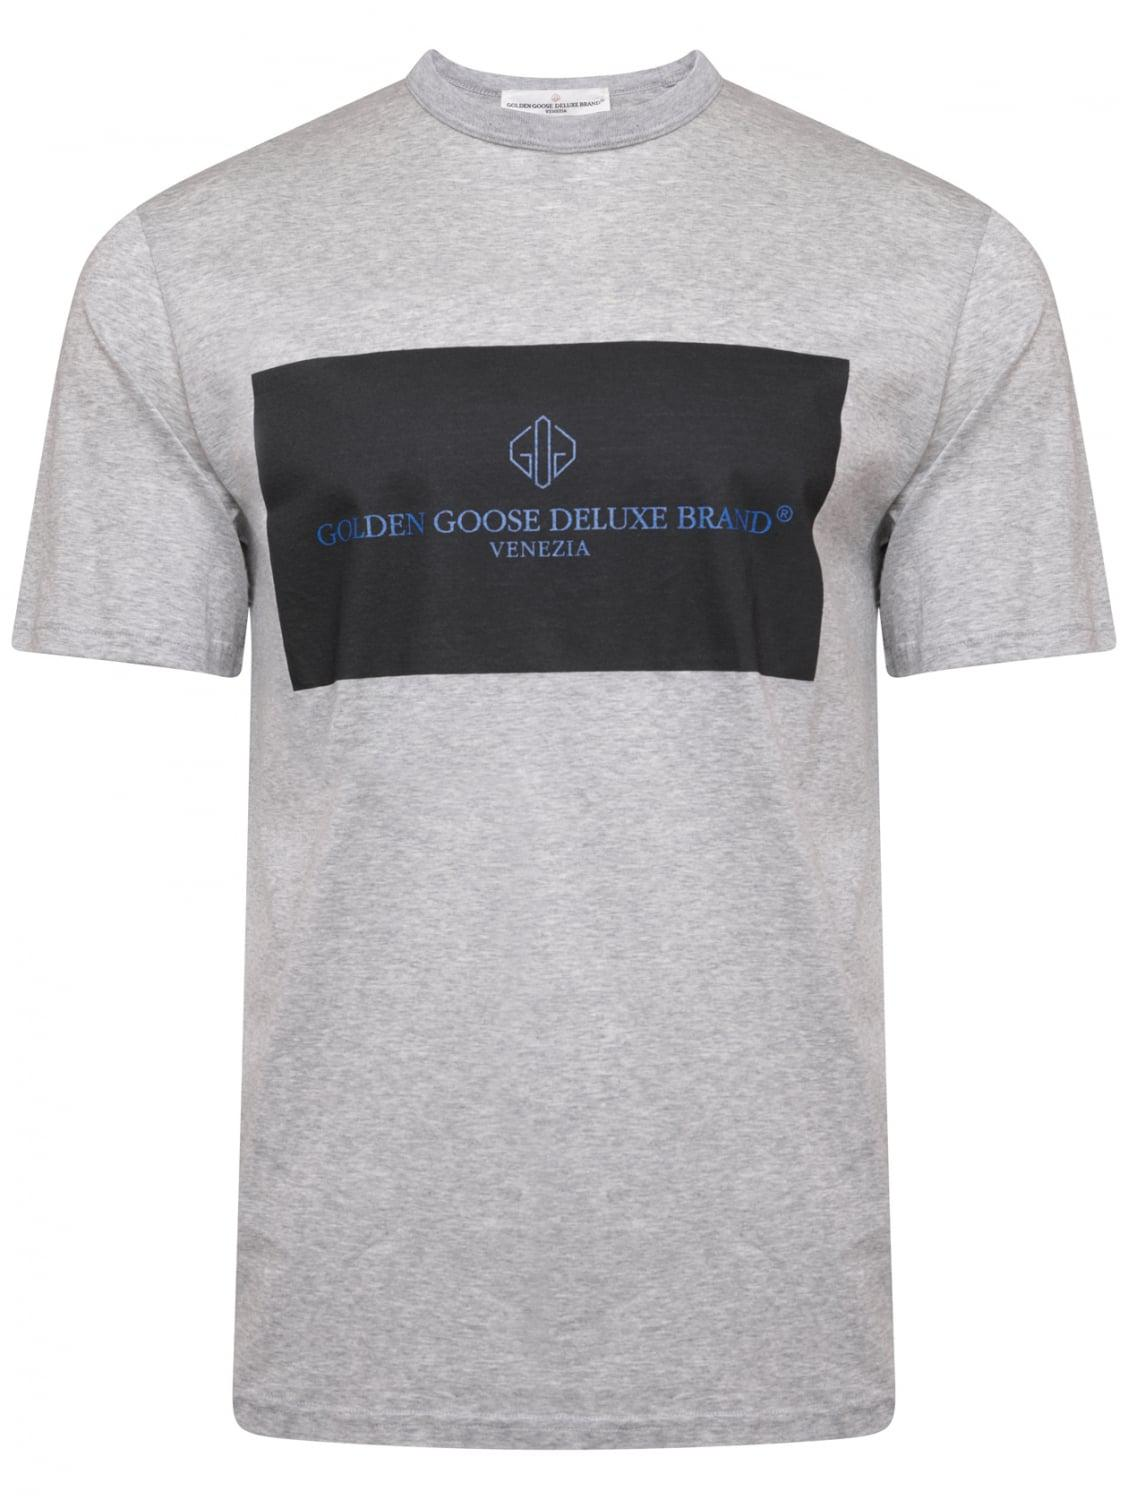 Free Shipping Low Price Golden Goose Deluxe Brand two-tone logo print T-shirt Best Store To Get For Sale veHio9